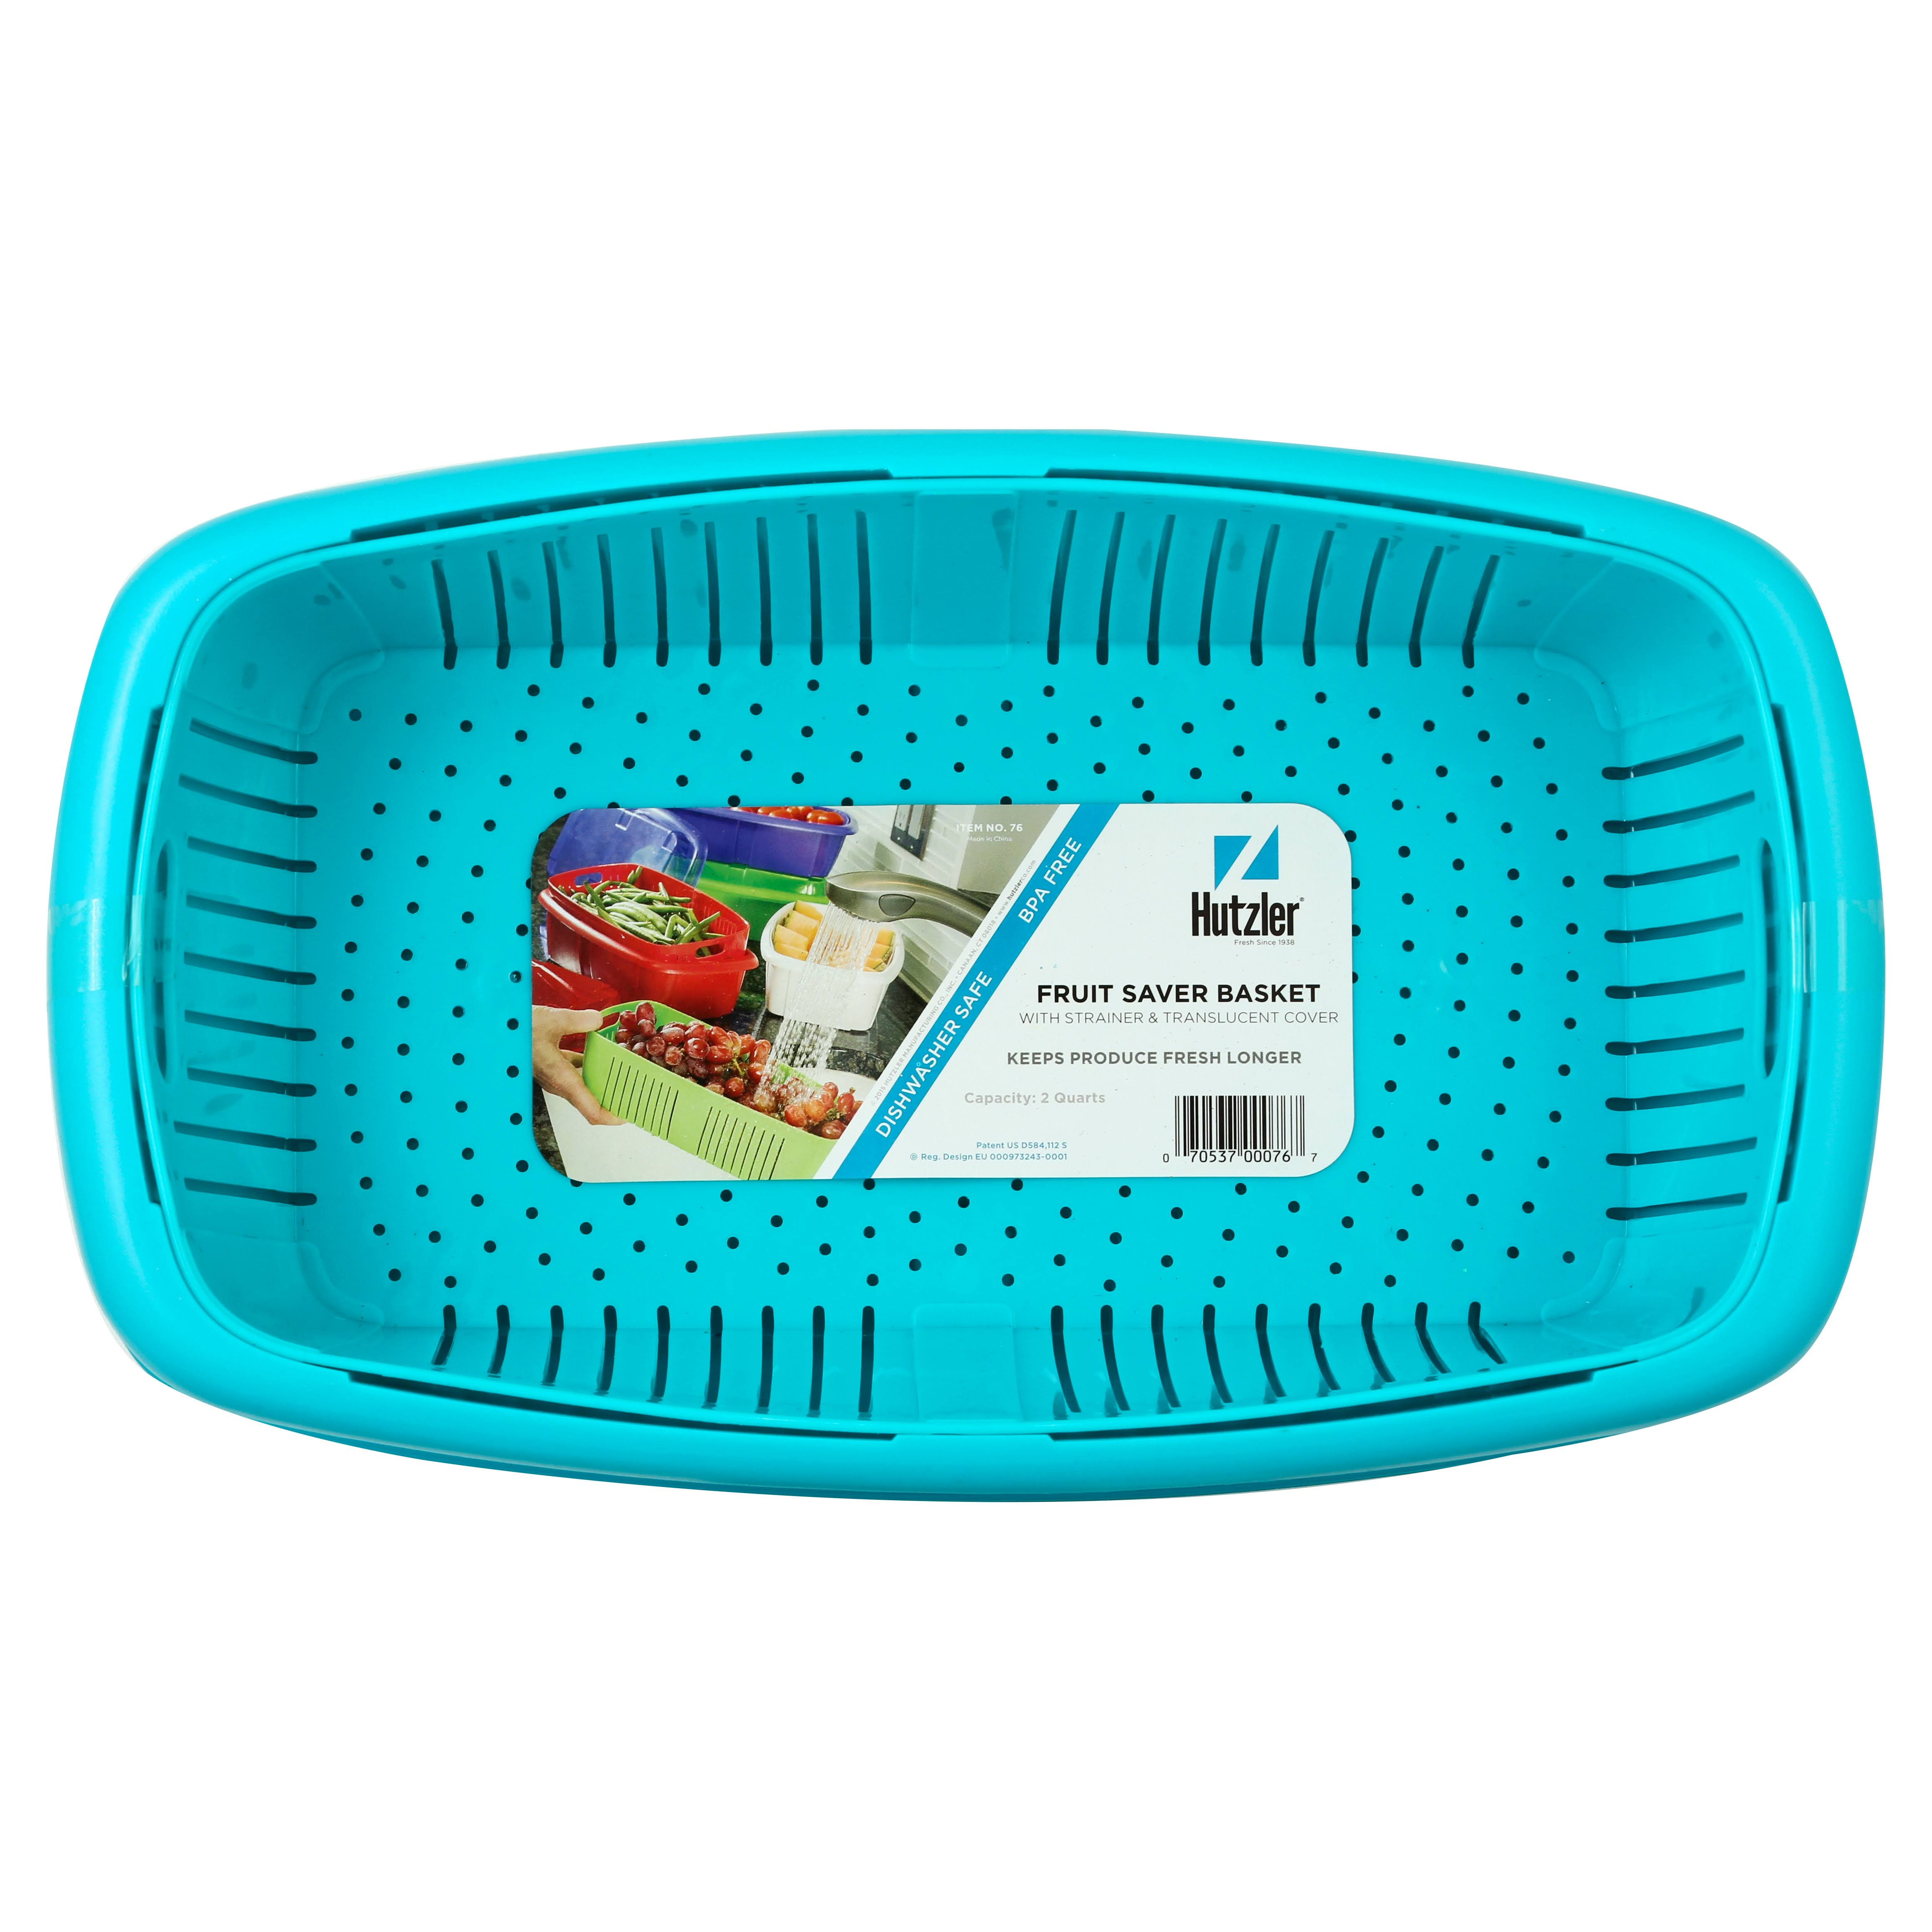 Gourmac Hutzler 3-In-1 Fruit Saver Basket